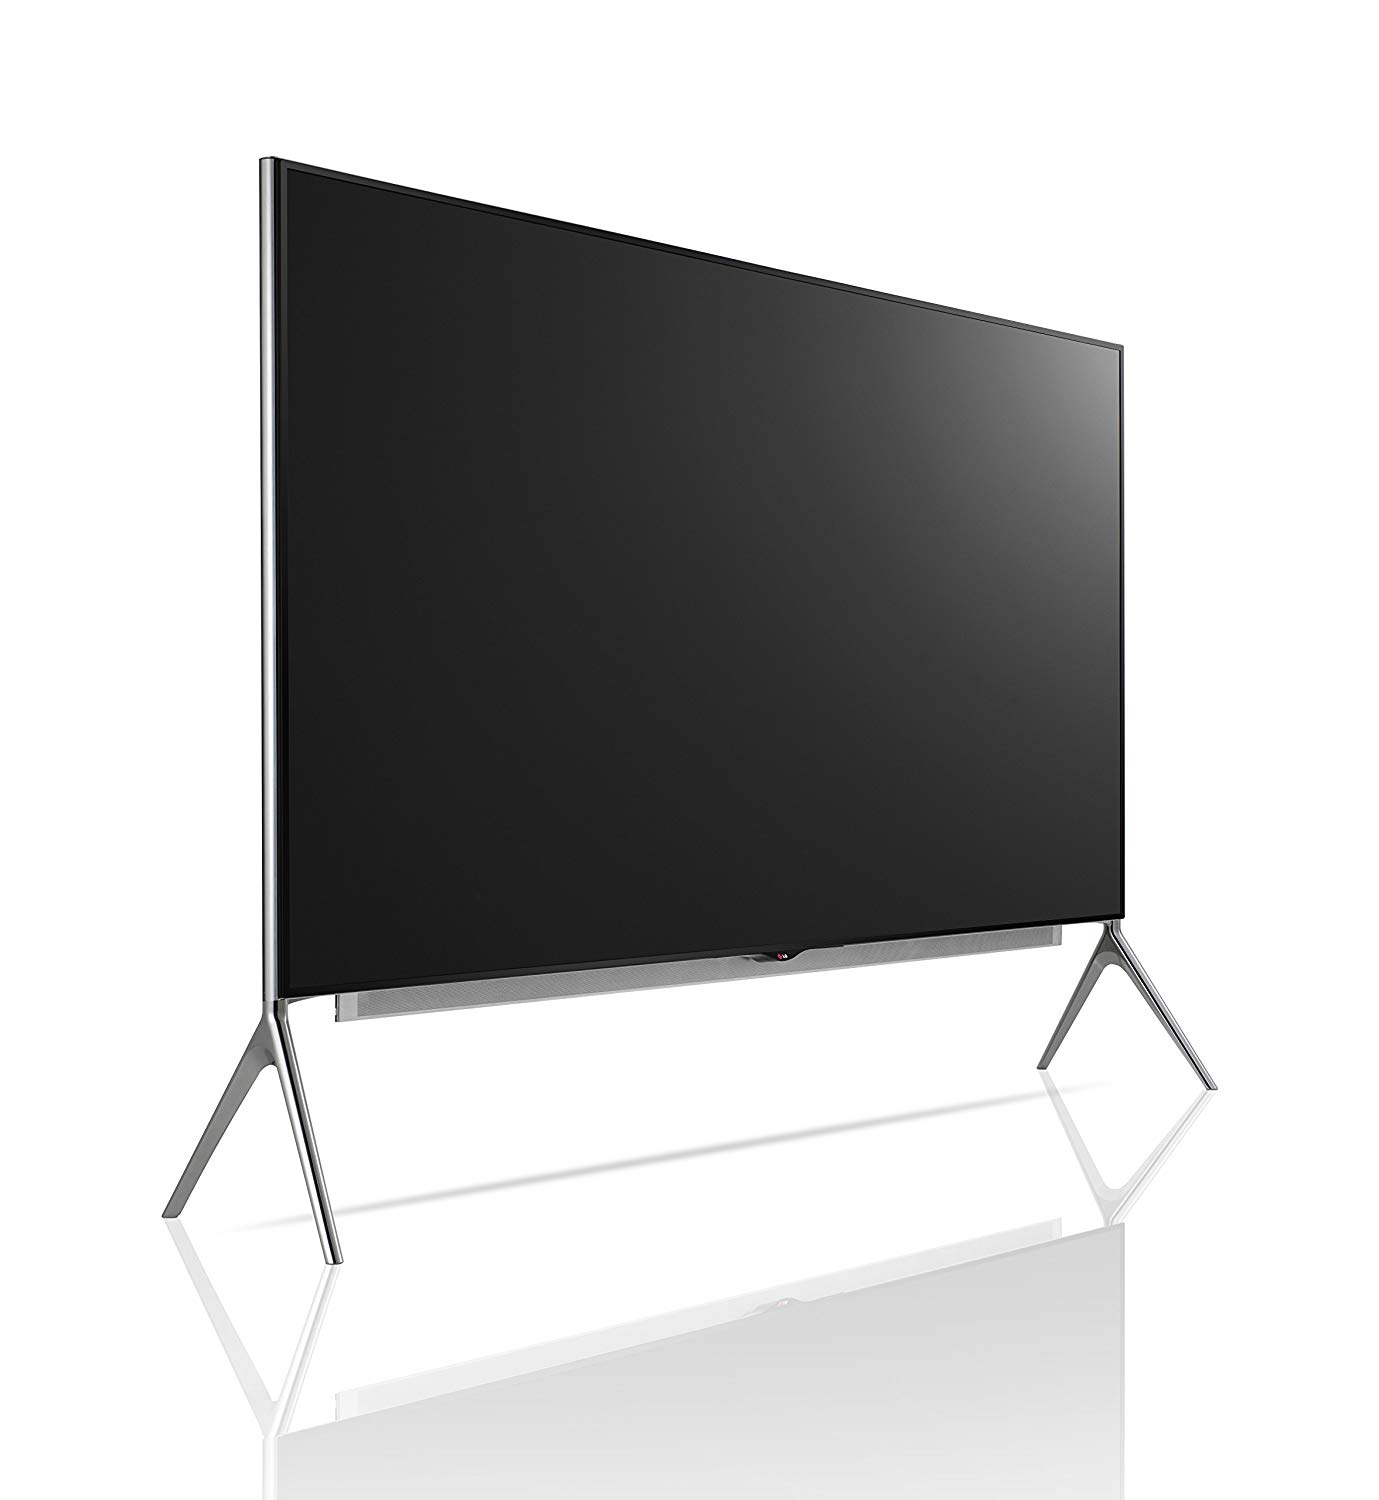 LG 3D Smart LED TV